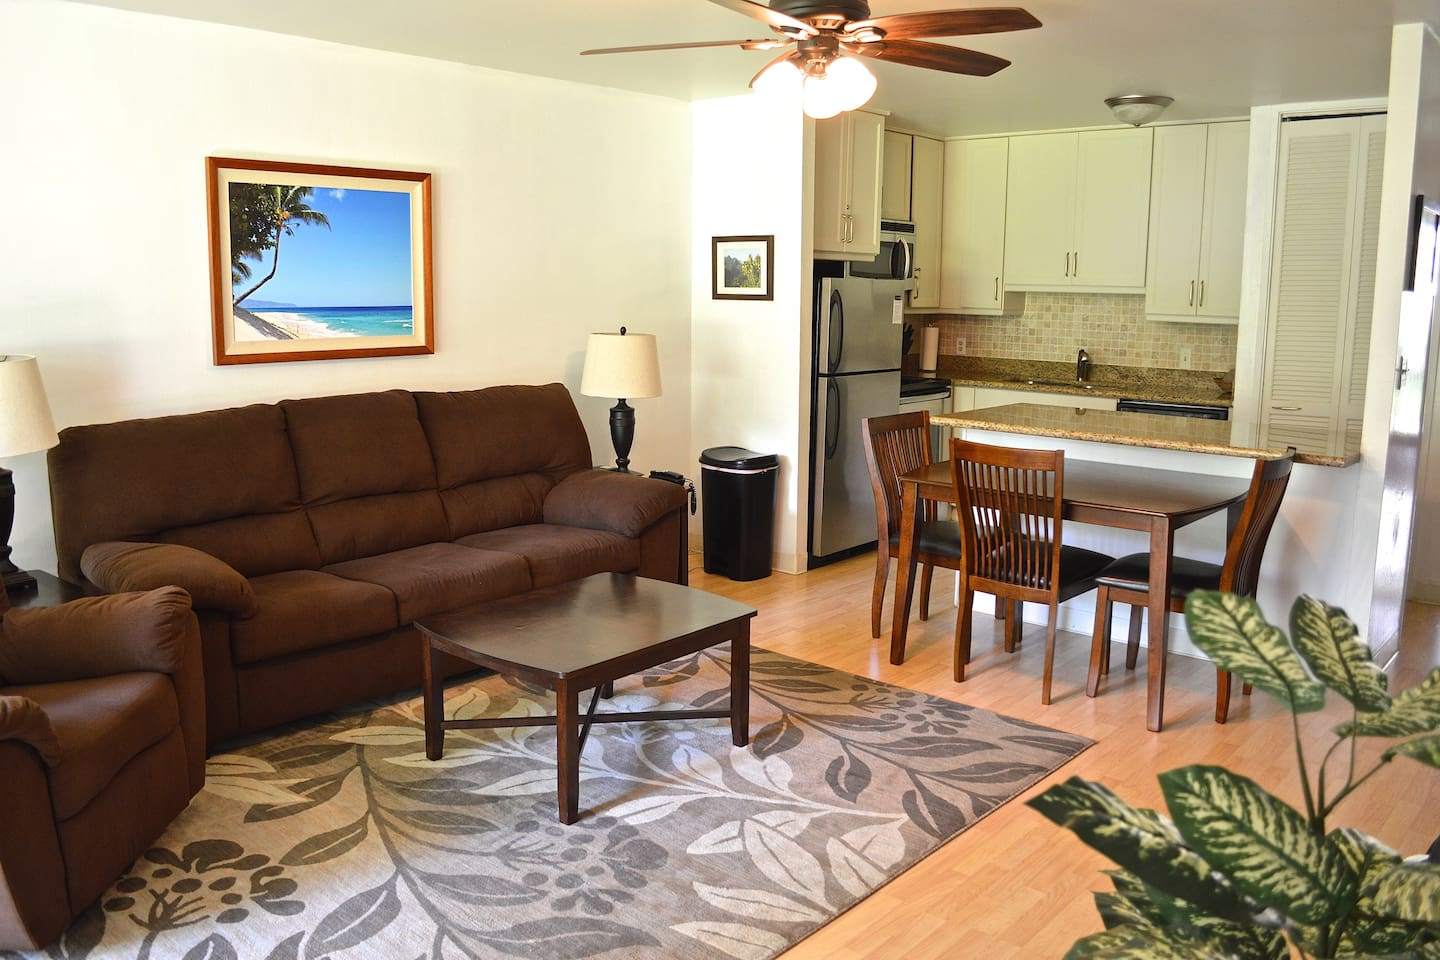 The condo is newly remodeled and has new furnishings and appliances.